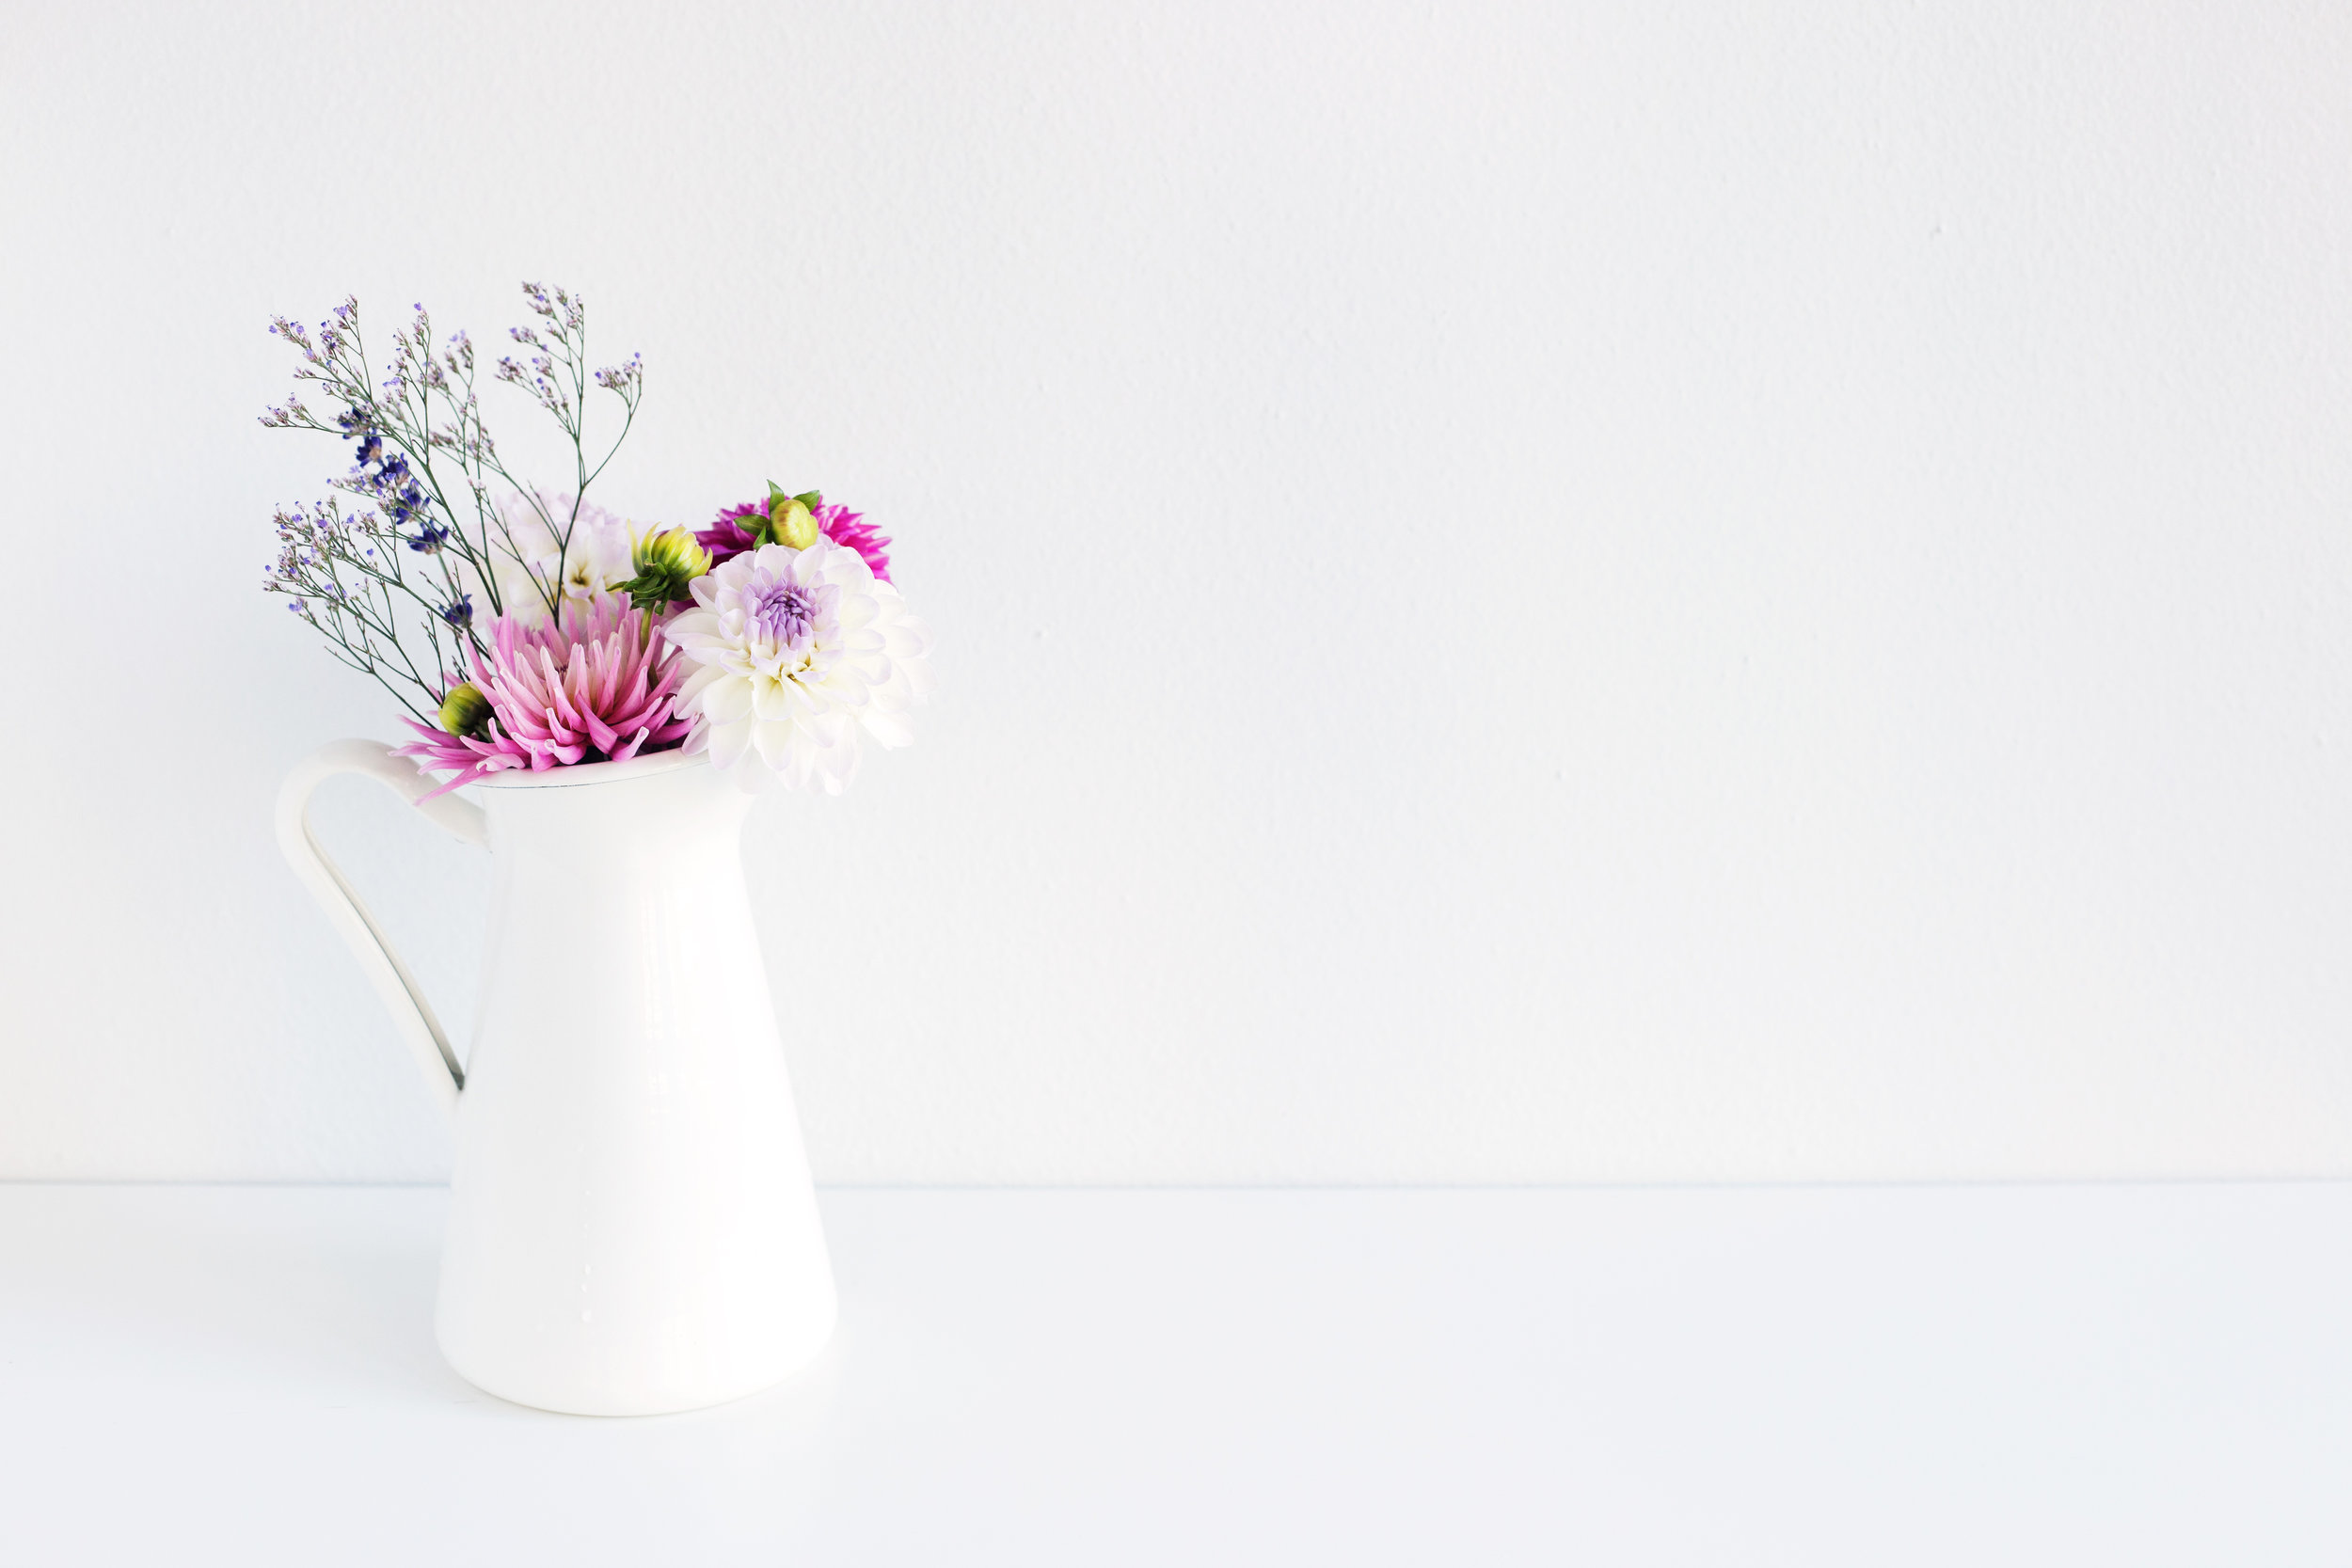 Free Stock photos - Create a streamlined visual presence using my free stock photos for your website